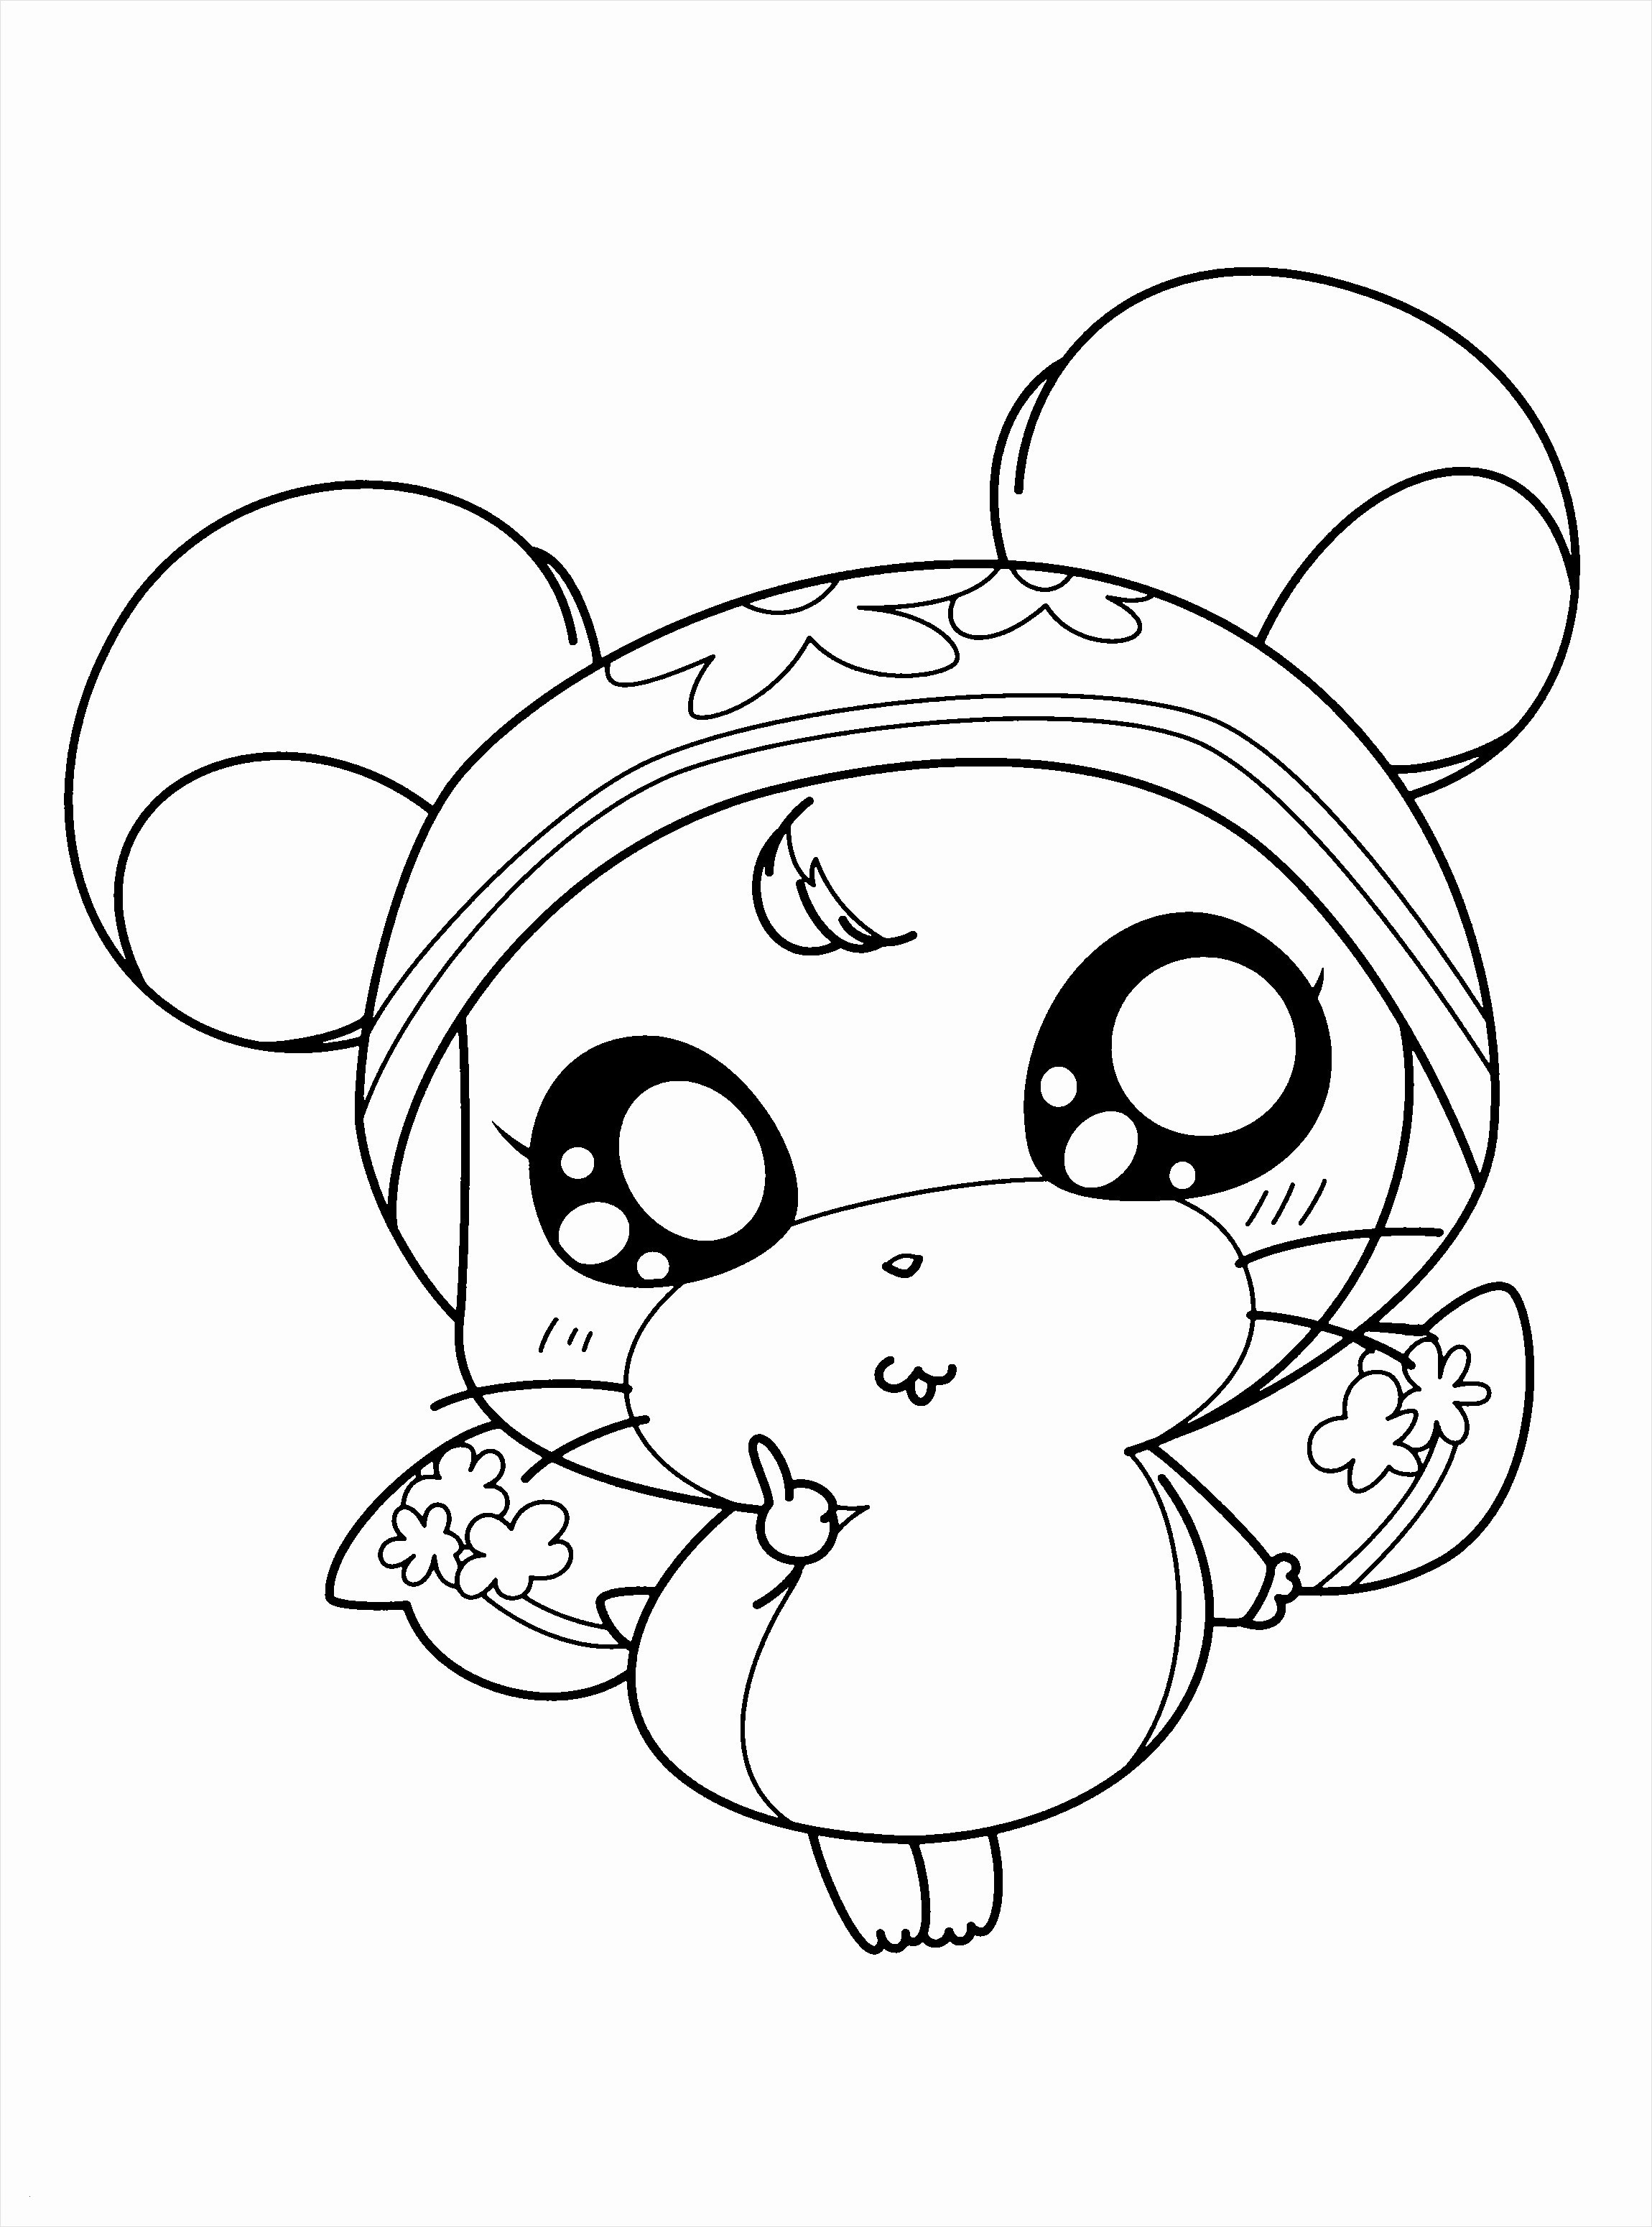 free-printable-animal-coloring-pages-of-free-printable-animal-coloring-pages Free Printable Animal Coloring Pages Animal